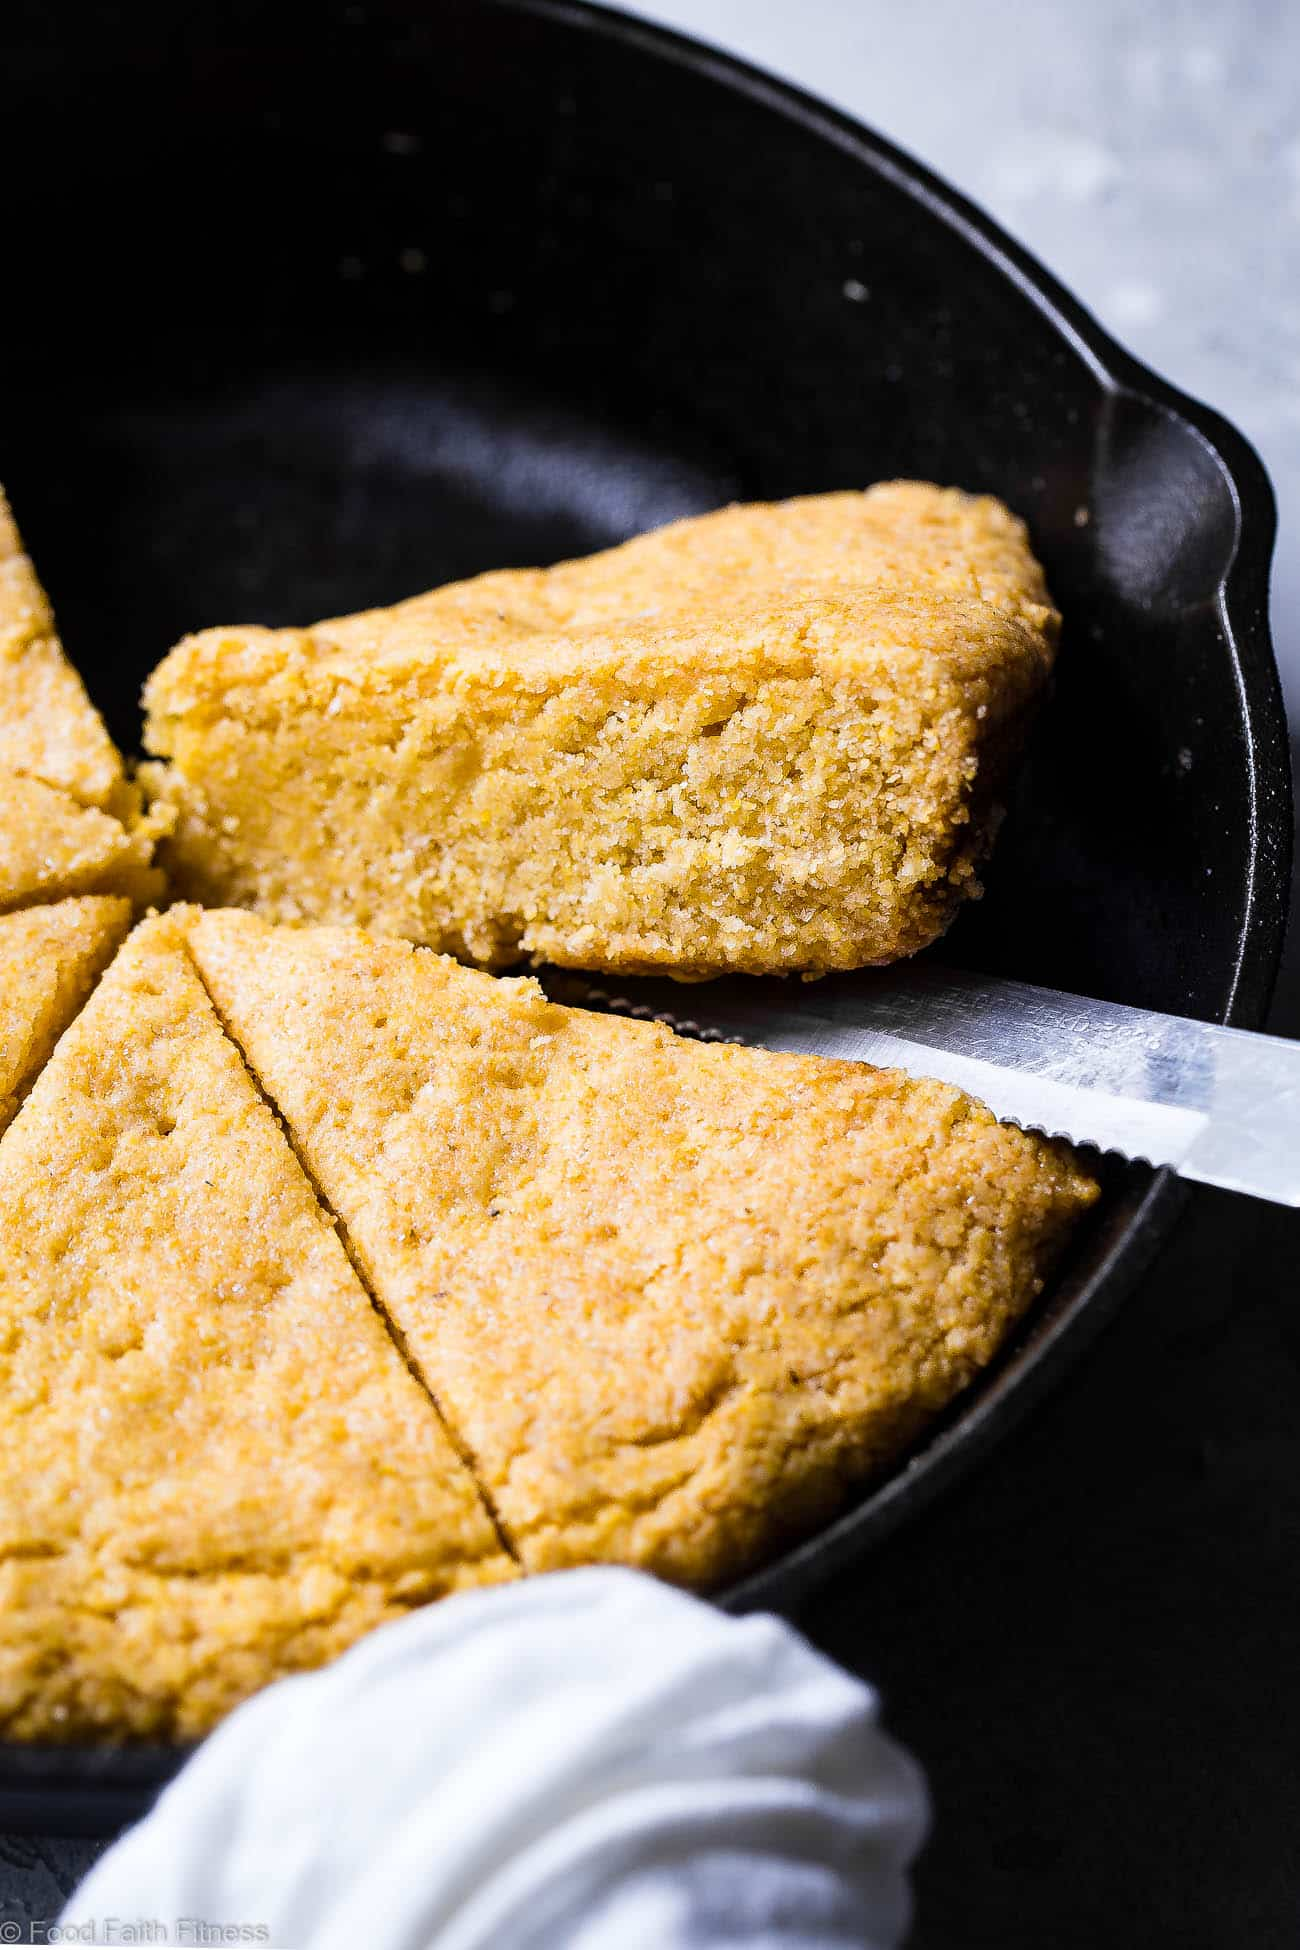 Easy Sweet Vegan Cornbread with Applesauce - This is the BEST gluten free, dairy free, egg free and vegan cornbread recipe! It's perfectly sweet, dense and SO chewy, you will never believe it's healthy and SO easy to make! | #Foodfaithfitness | #Glutenfree #Vegan #Dairyfree #Eggfree #Cornbread